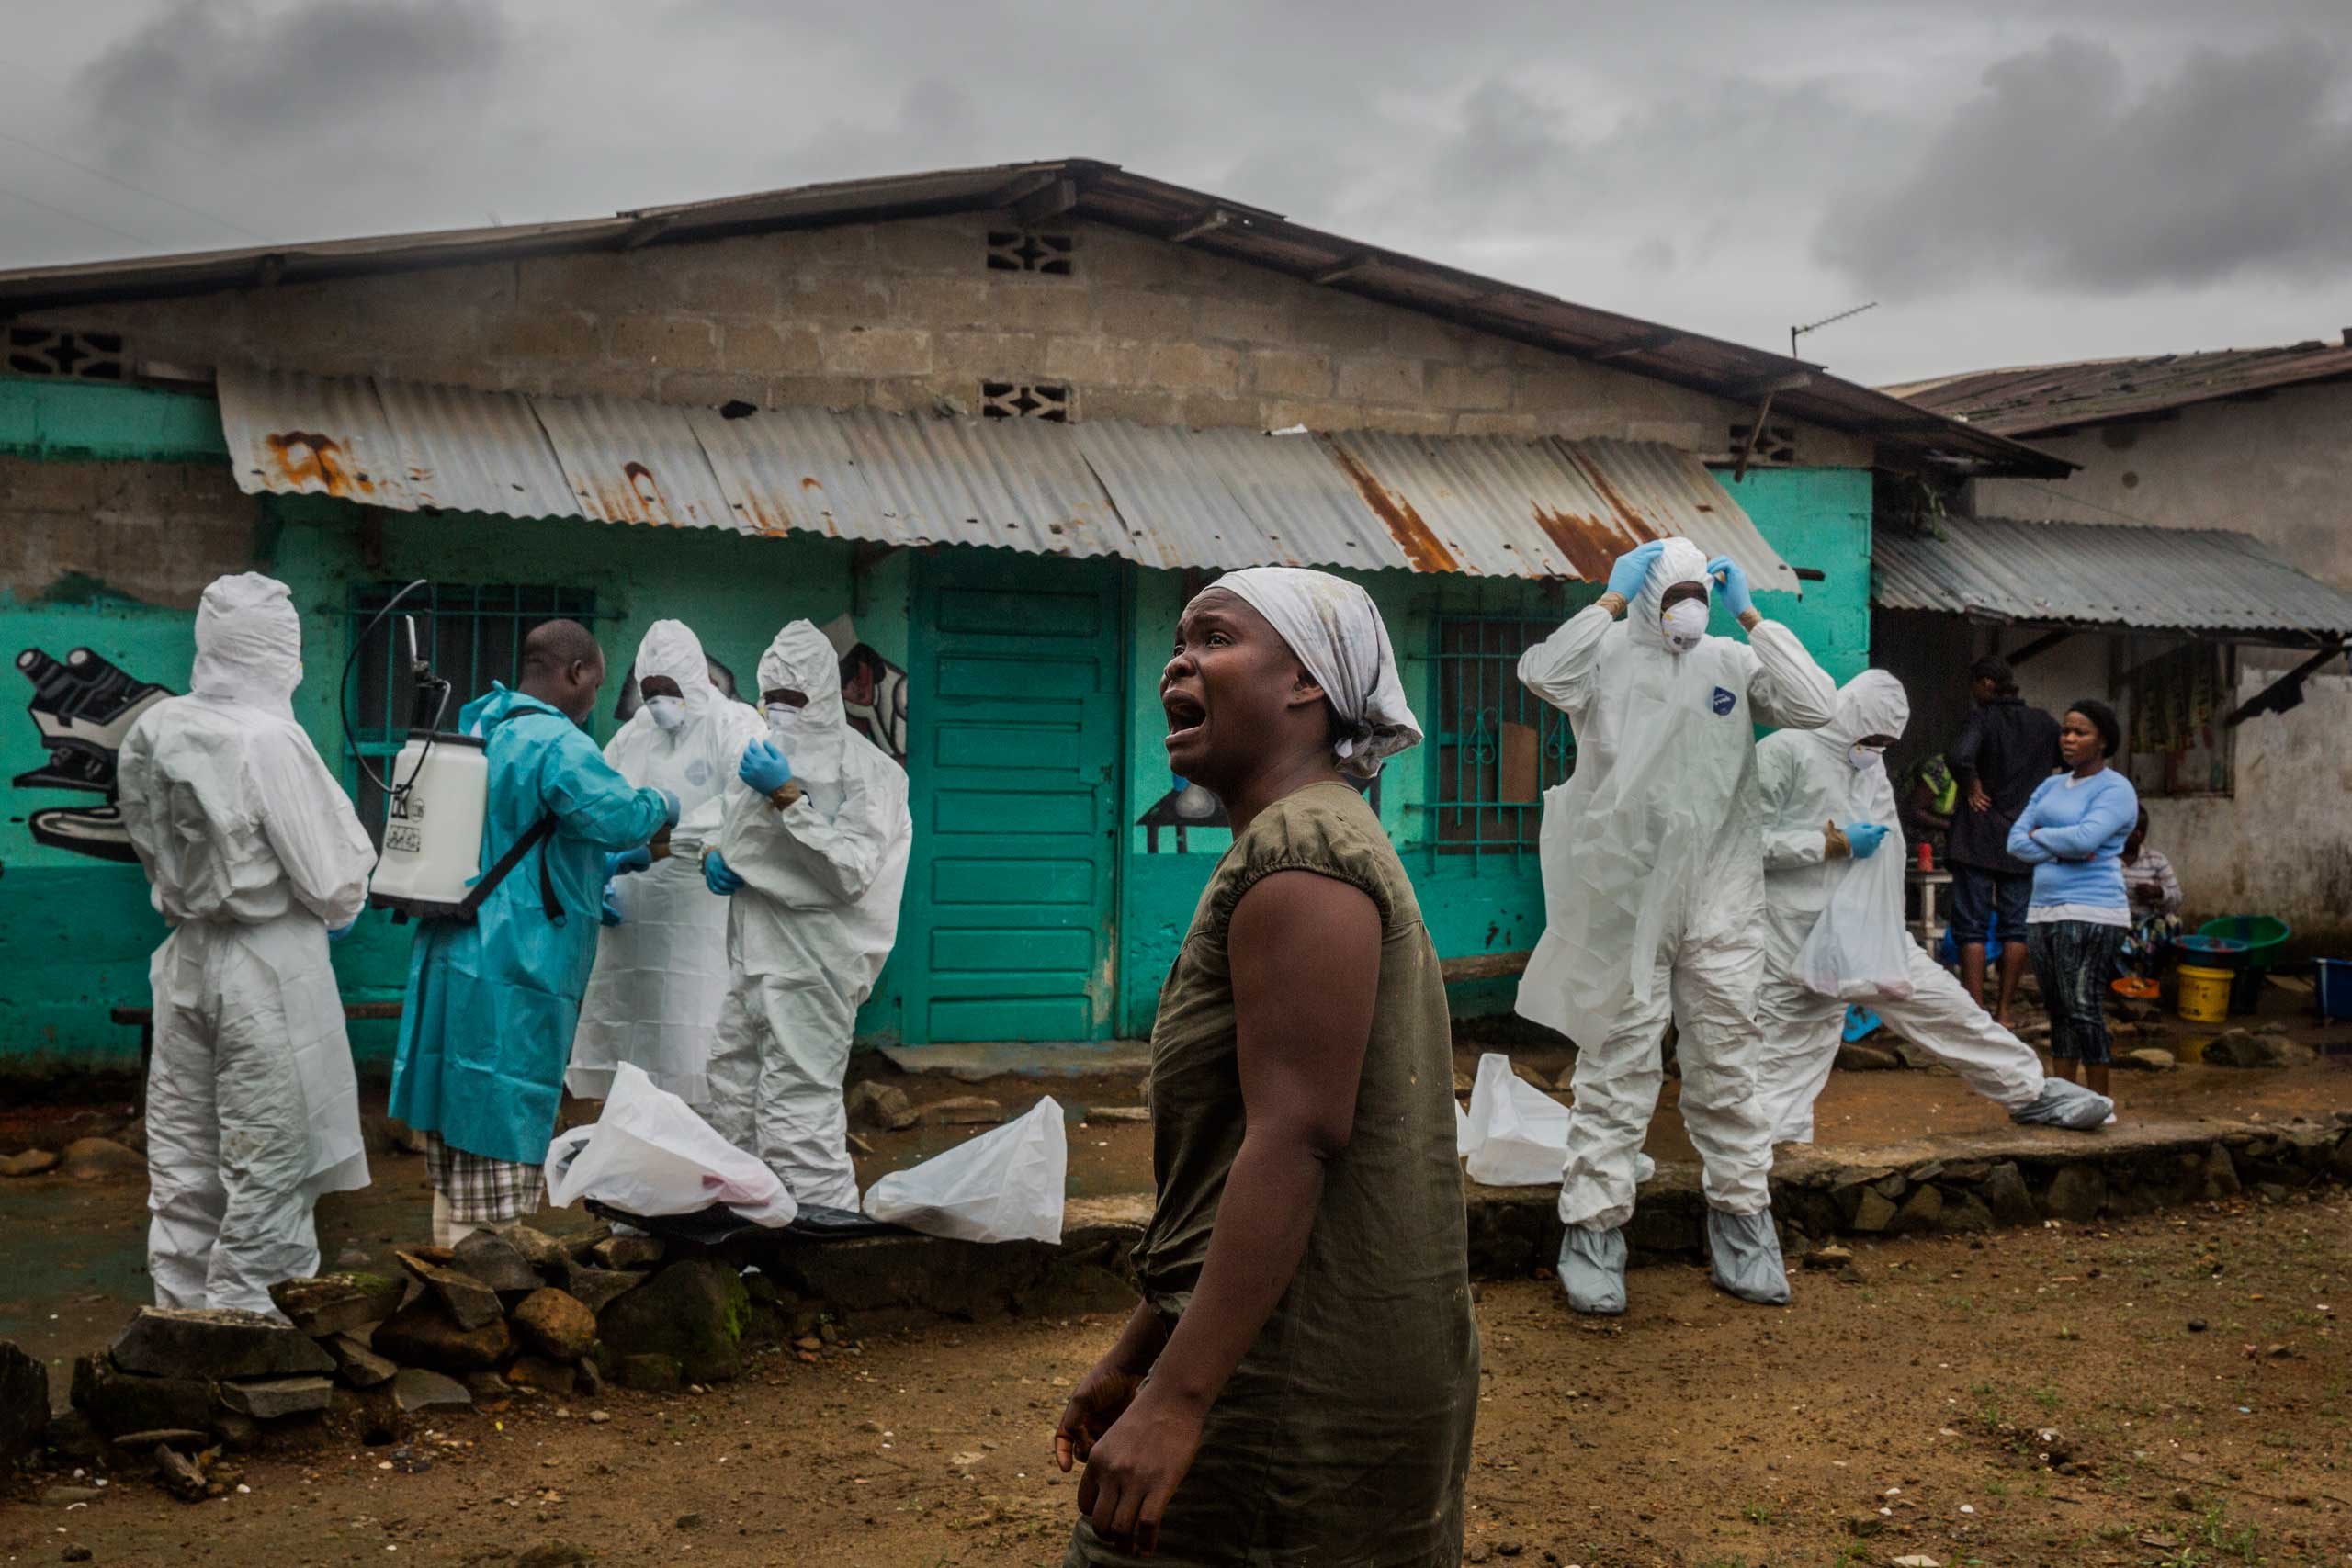 A relative grieves as members of a Liberian Red Cross burial team dress themselves in full protective clothing prior to removing the body of suspected Ebola victim, Ofori Gweah, 62, on Sept. 18, 2014 in central Monrovia, Liberia.